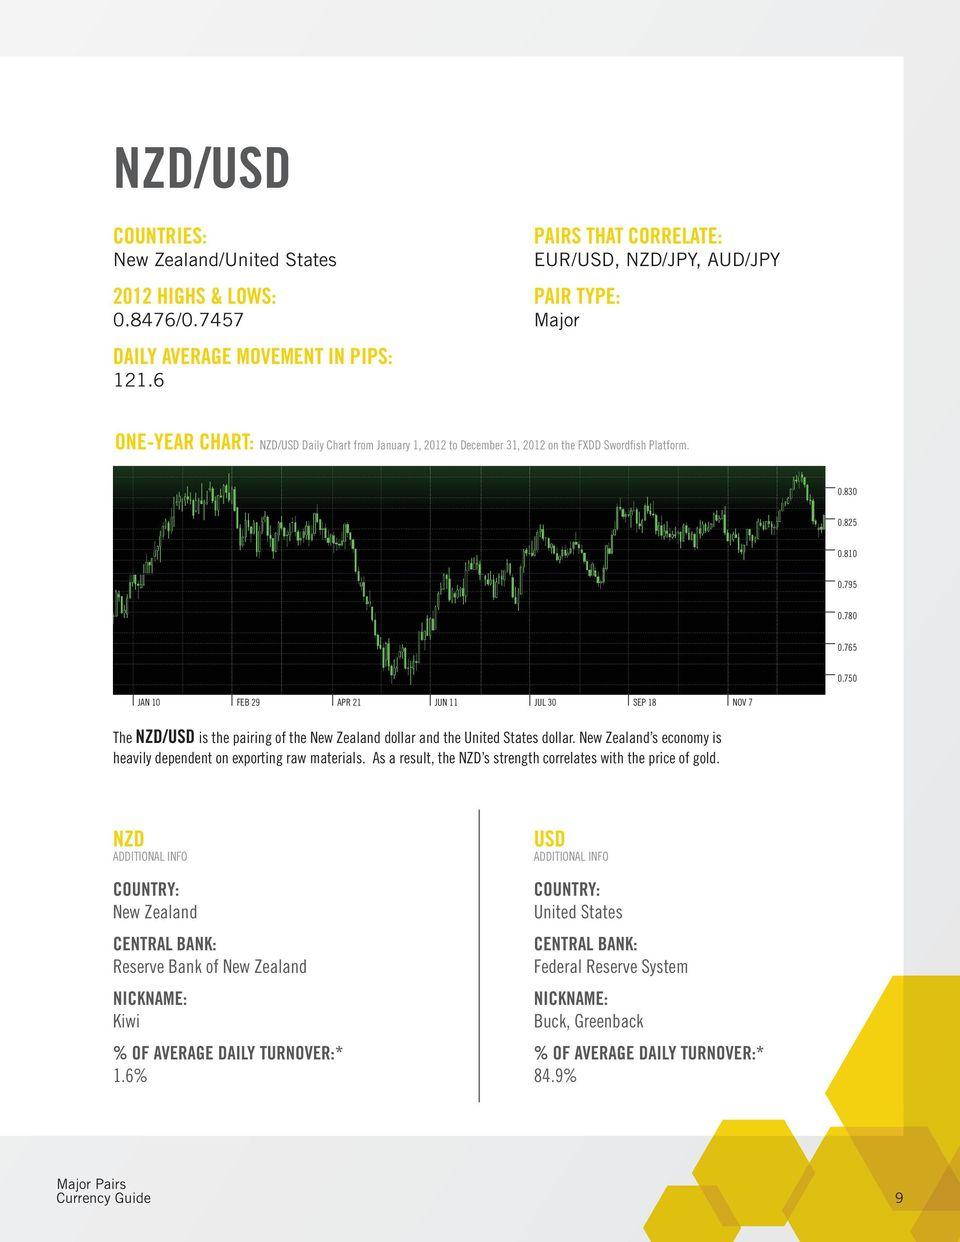 780 0.765 0.750 JAN 10 FEB 29 APR 21 JUN 11 JUL 30 SEP 18 NOV 7 The NZD/USD is the pairing of the New Zealand dollar and the United States dollar.